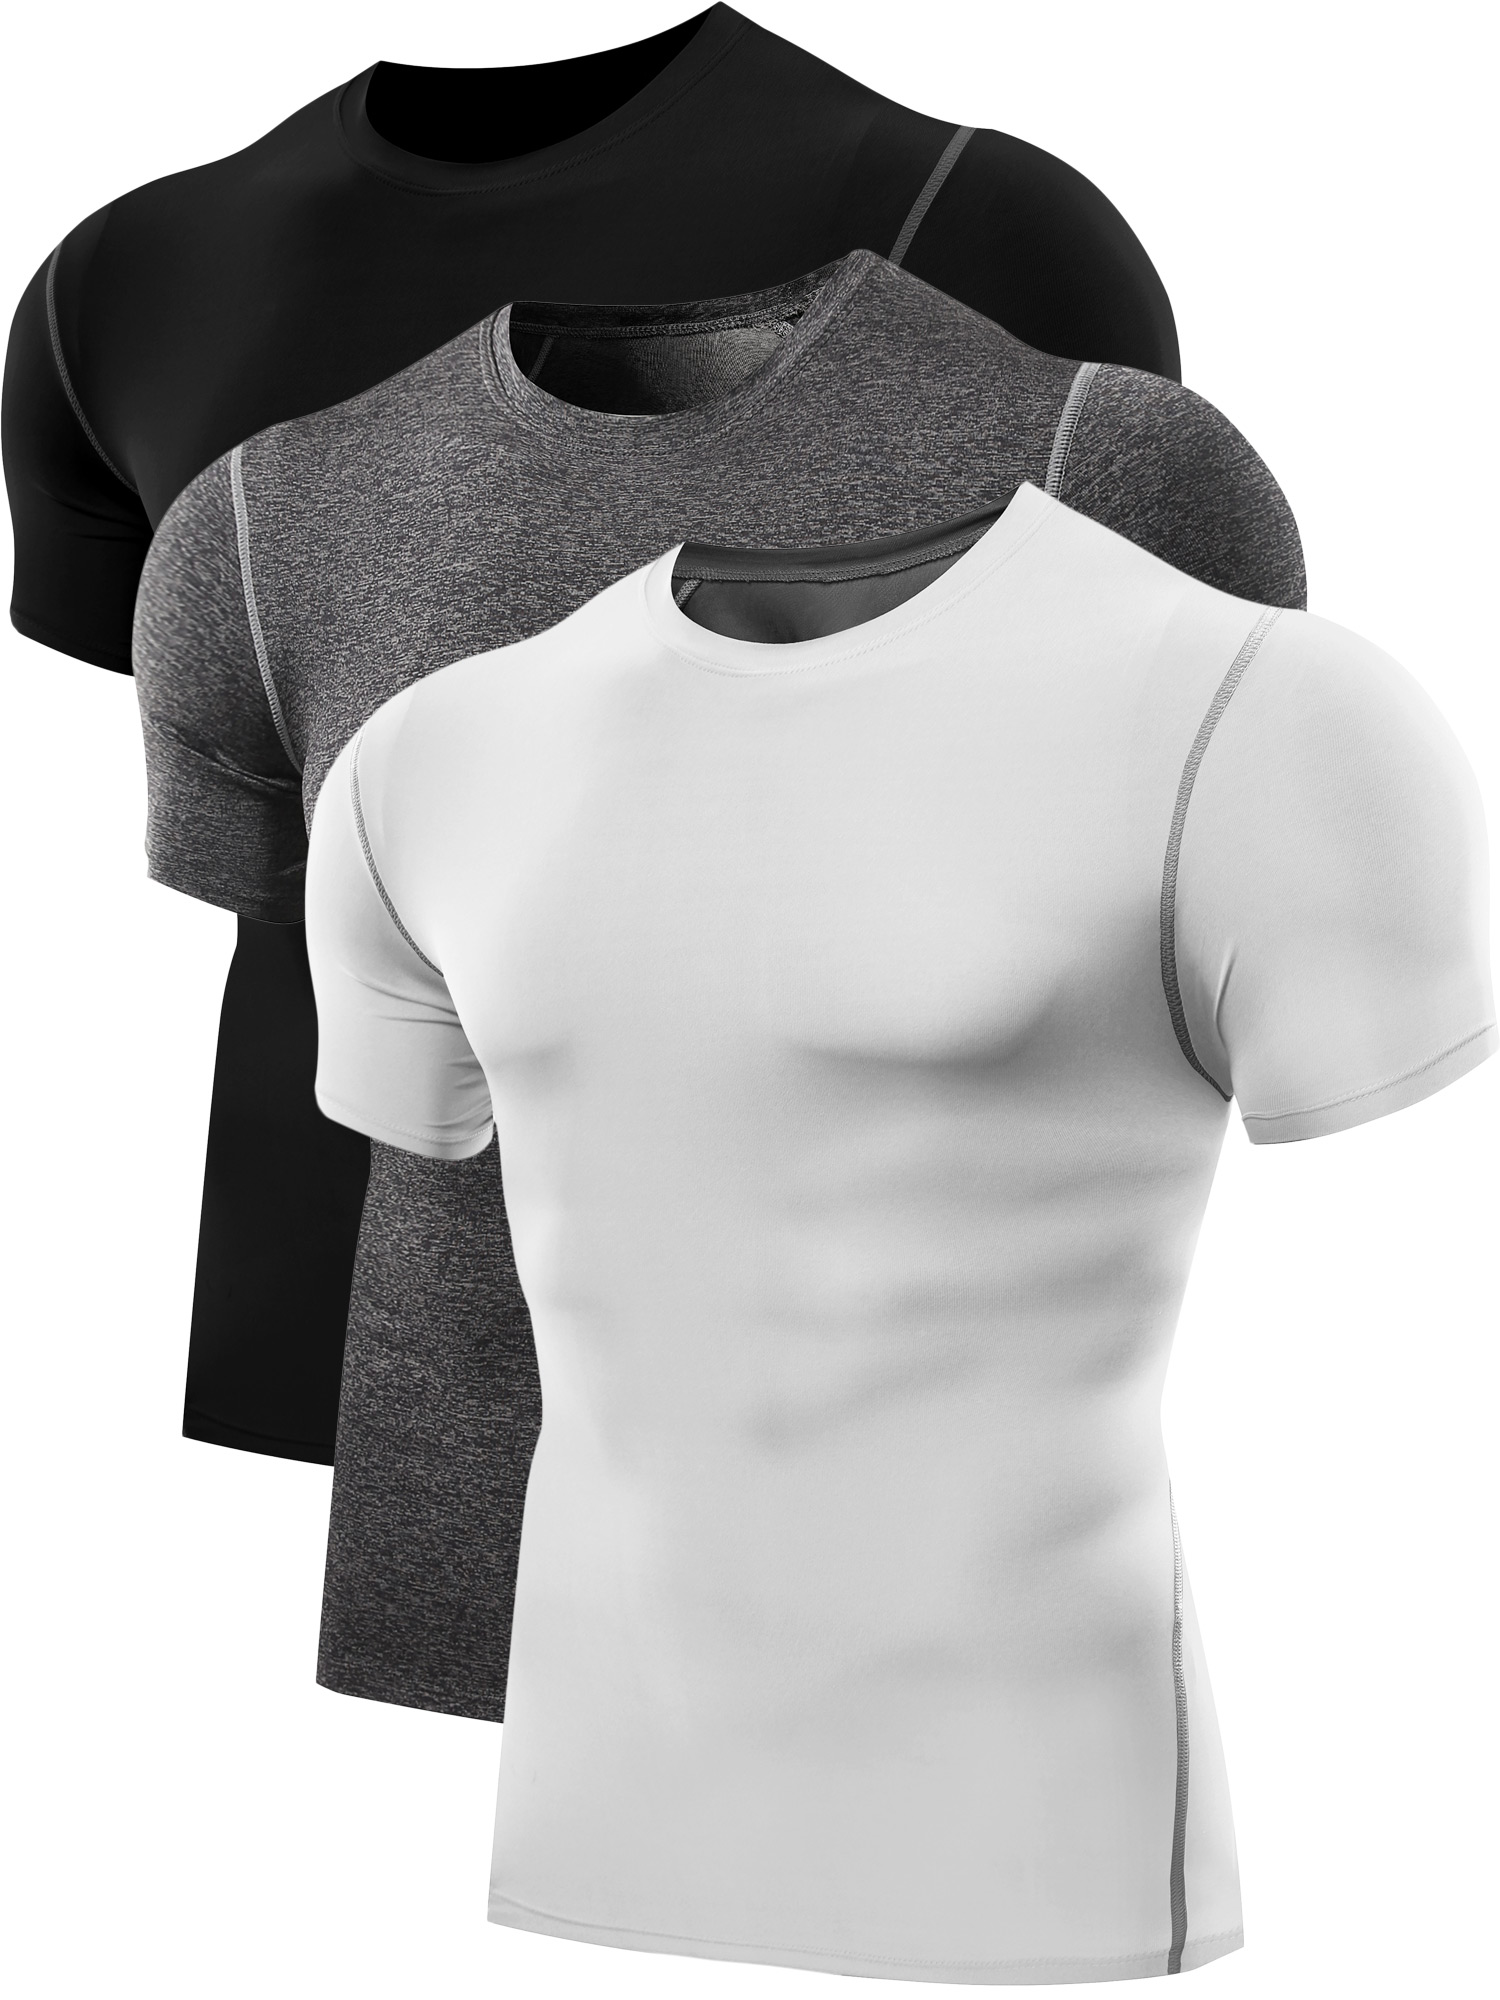 0b6f8985b5 ... Neleus Men's 3 Pack Athletic Compression Under Base Layer Sport Shirt  DT0003 ...